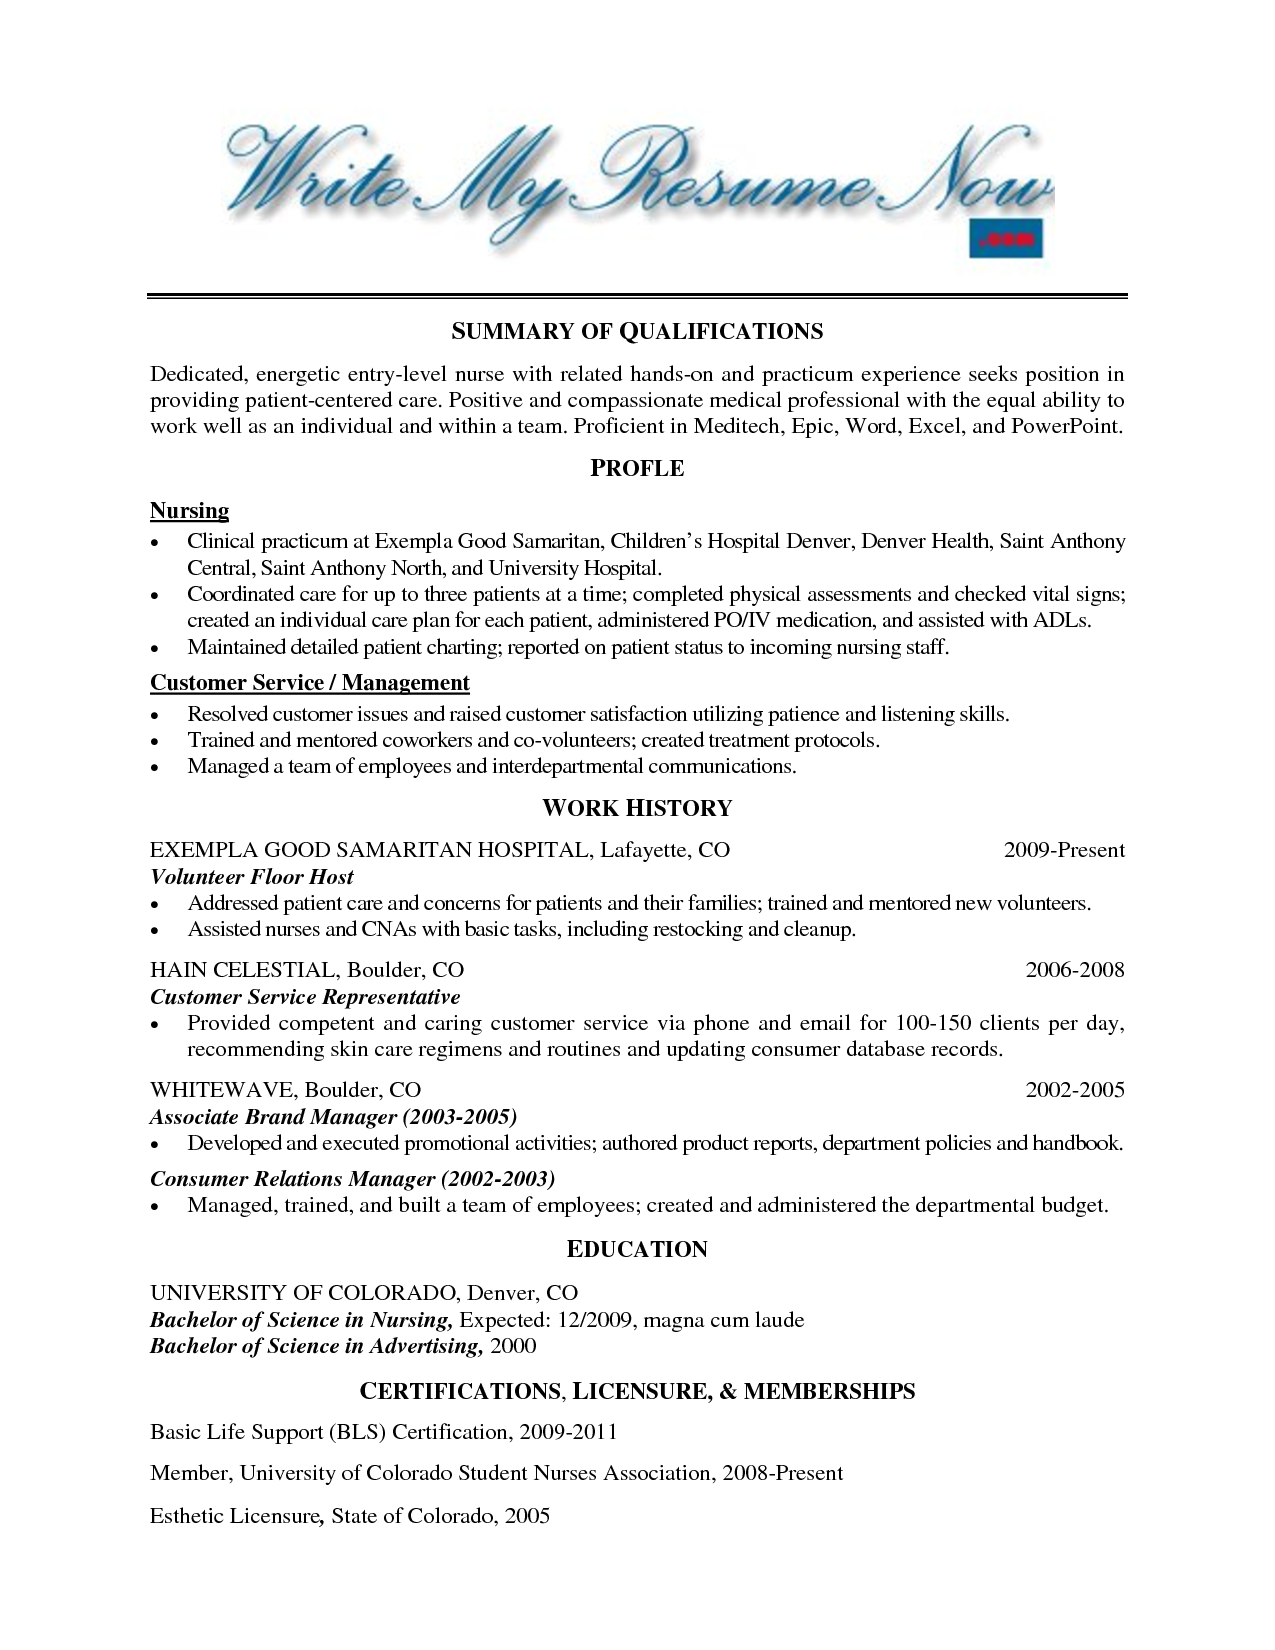 resume Volunteer Experience On Resume Sample hospital volunteer resume example httpwww resumecareer info experience sample volunteering helps game programmer free samples blue sky resumes best home design id